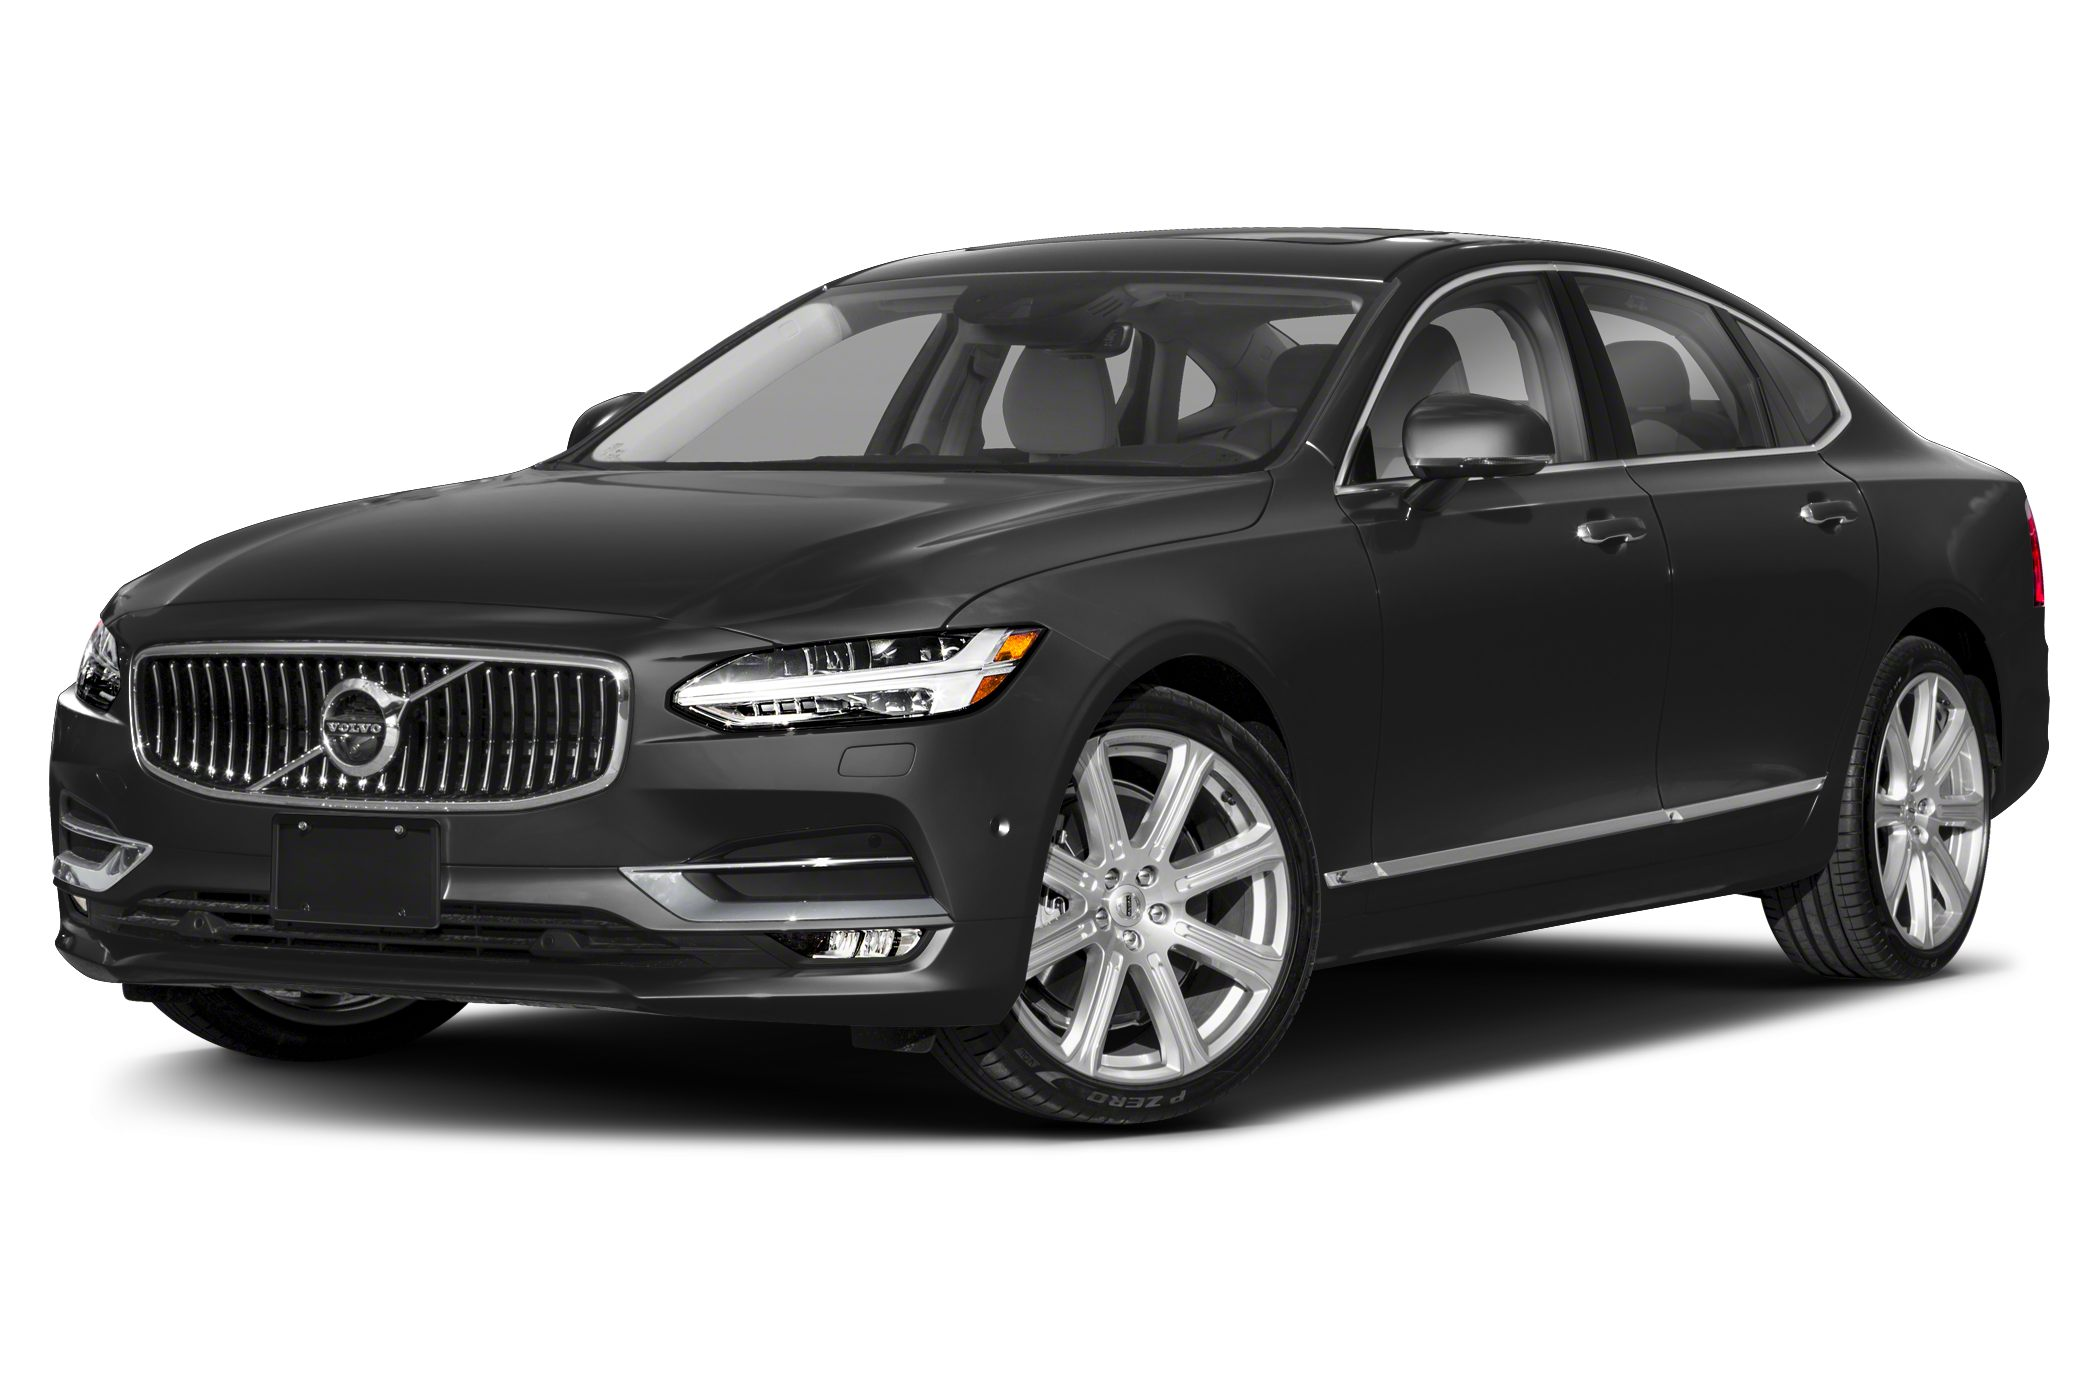 2017 Volvo S90 T6 Momentum 4dr All-wheel Drive Sedan